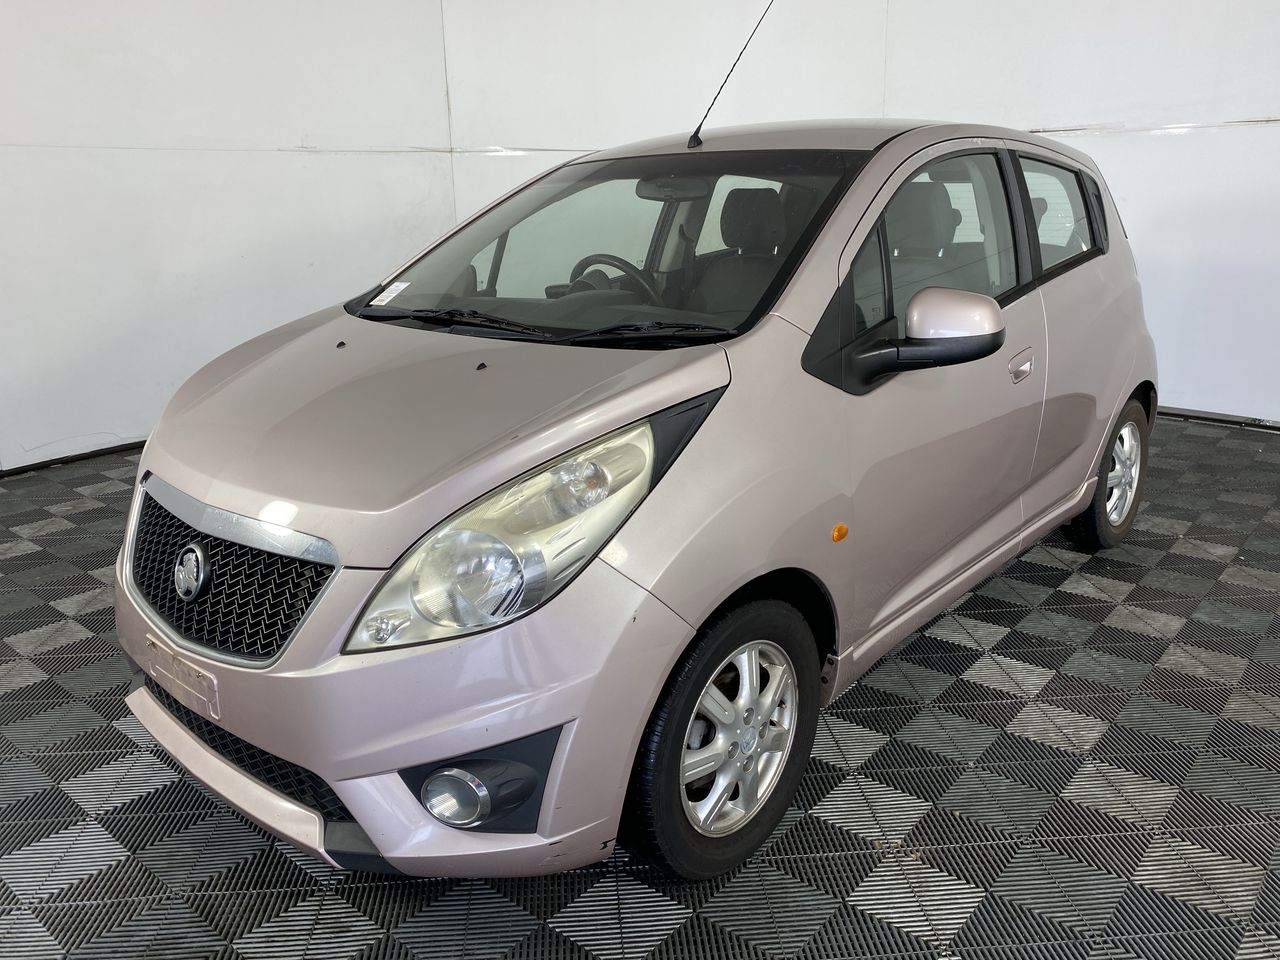 2010 Holden Barina Spark CD MJ Manual Hatchback